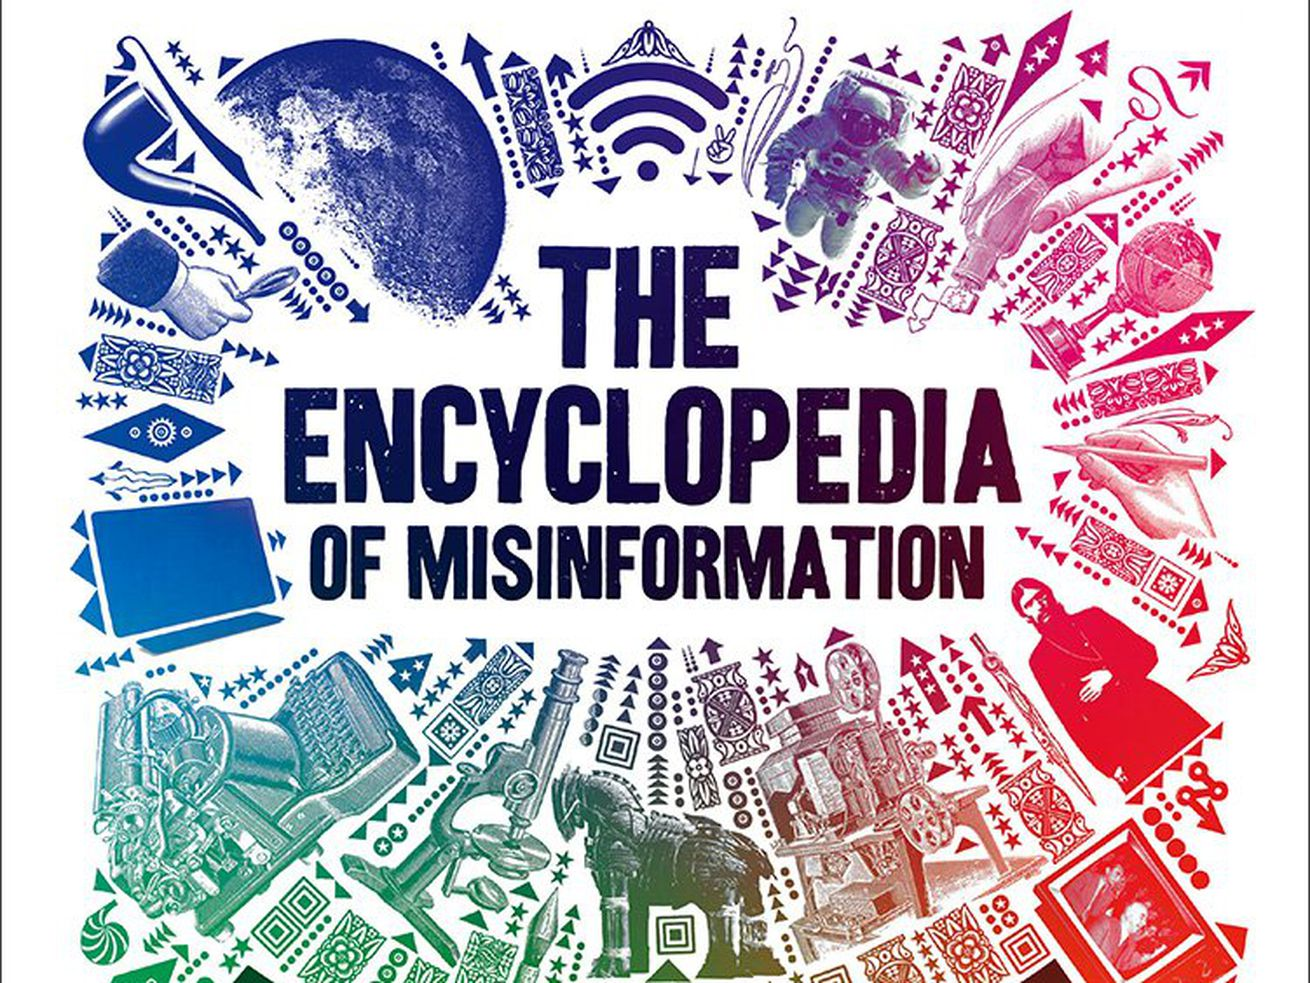 Rex Sorgatz's new book is a romp through lies, hoaxes and conspiracy theories — perfect for the internet in 2018